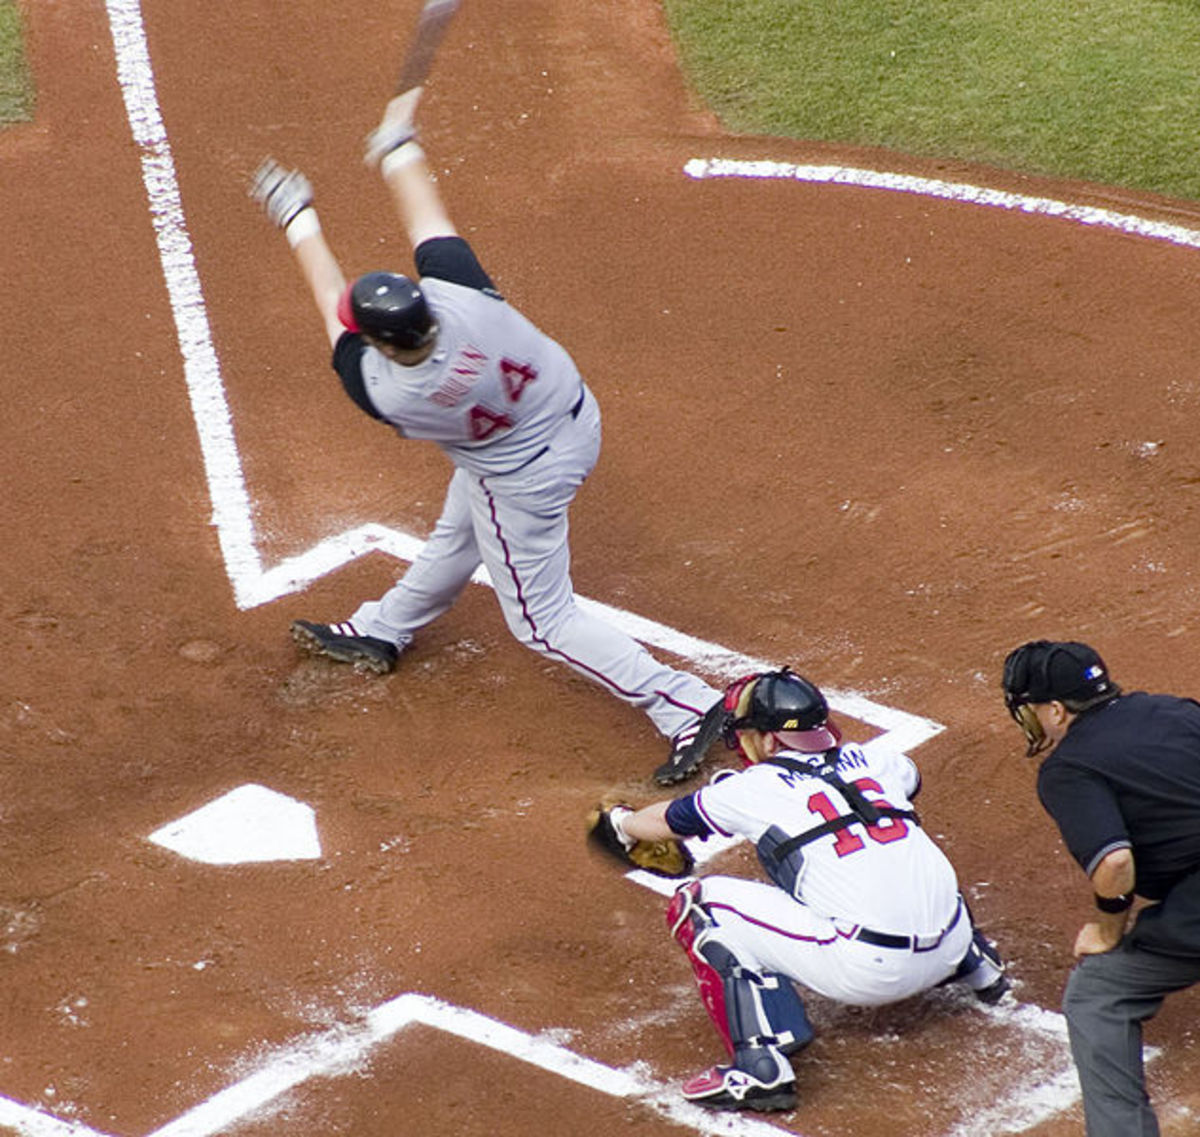 Cincinnati Red's outfielder Adam Dunn strikes out swinging to Atlanta Braves pitcher John Smoltz. Braves' catcher Brian McCann catches the pitch behind the plate.